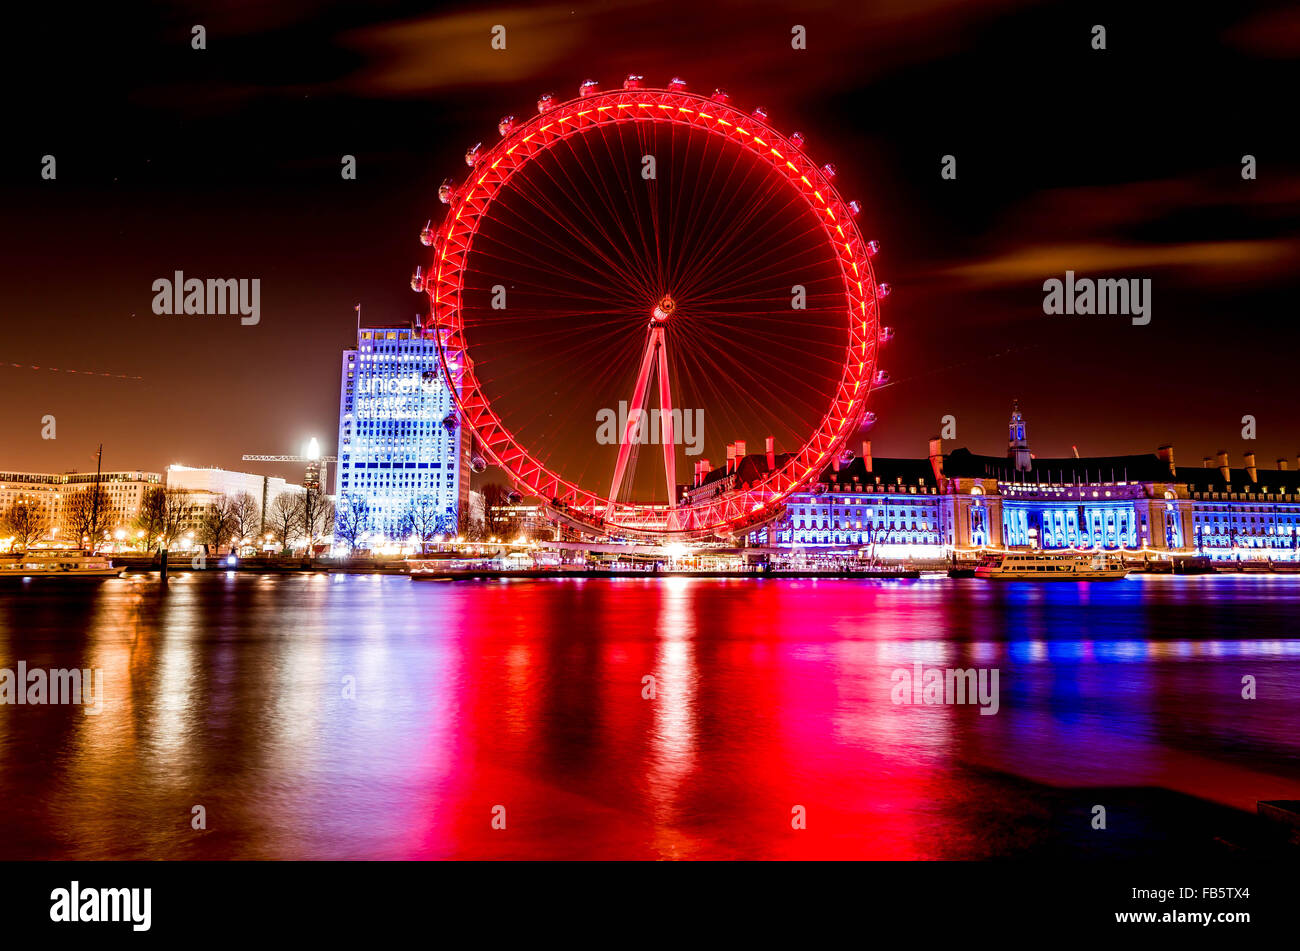 London Eye and nearby buildings on a winter evening, showing reflection in the River Thames - Stock Image